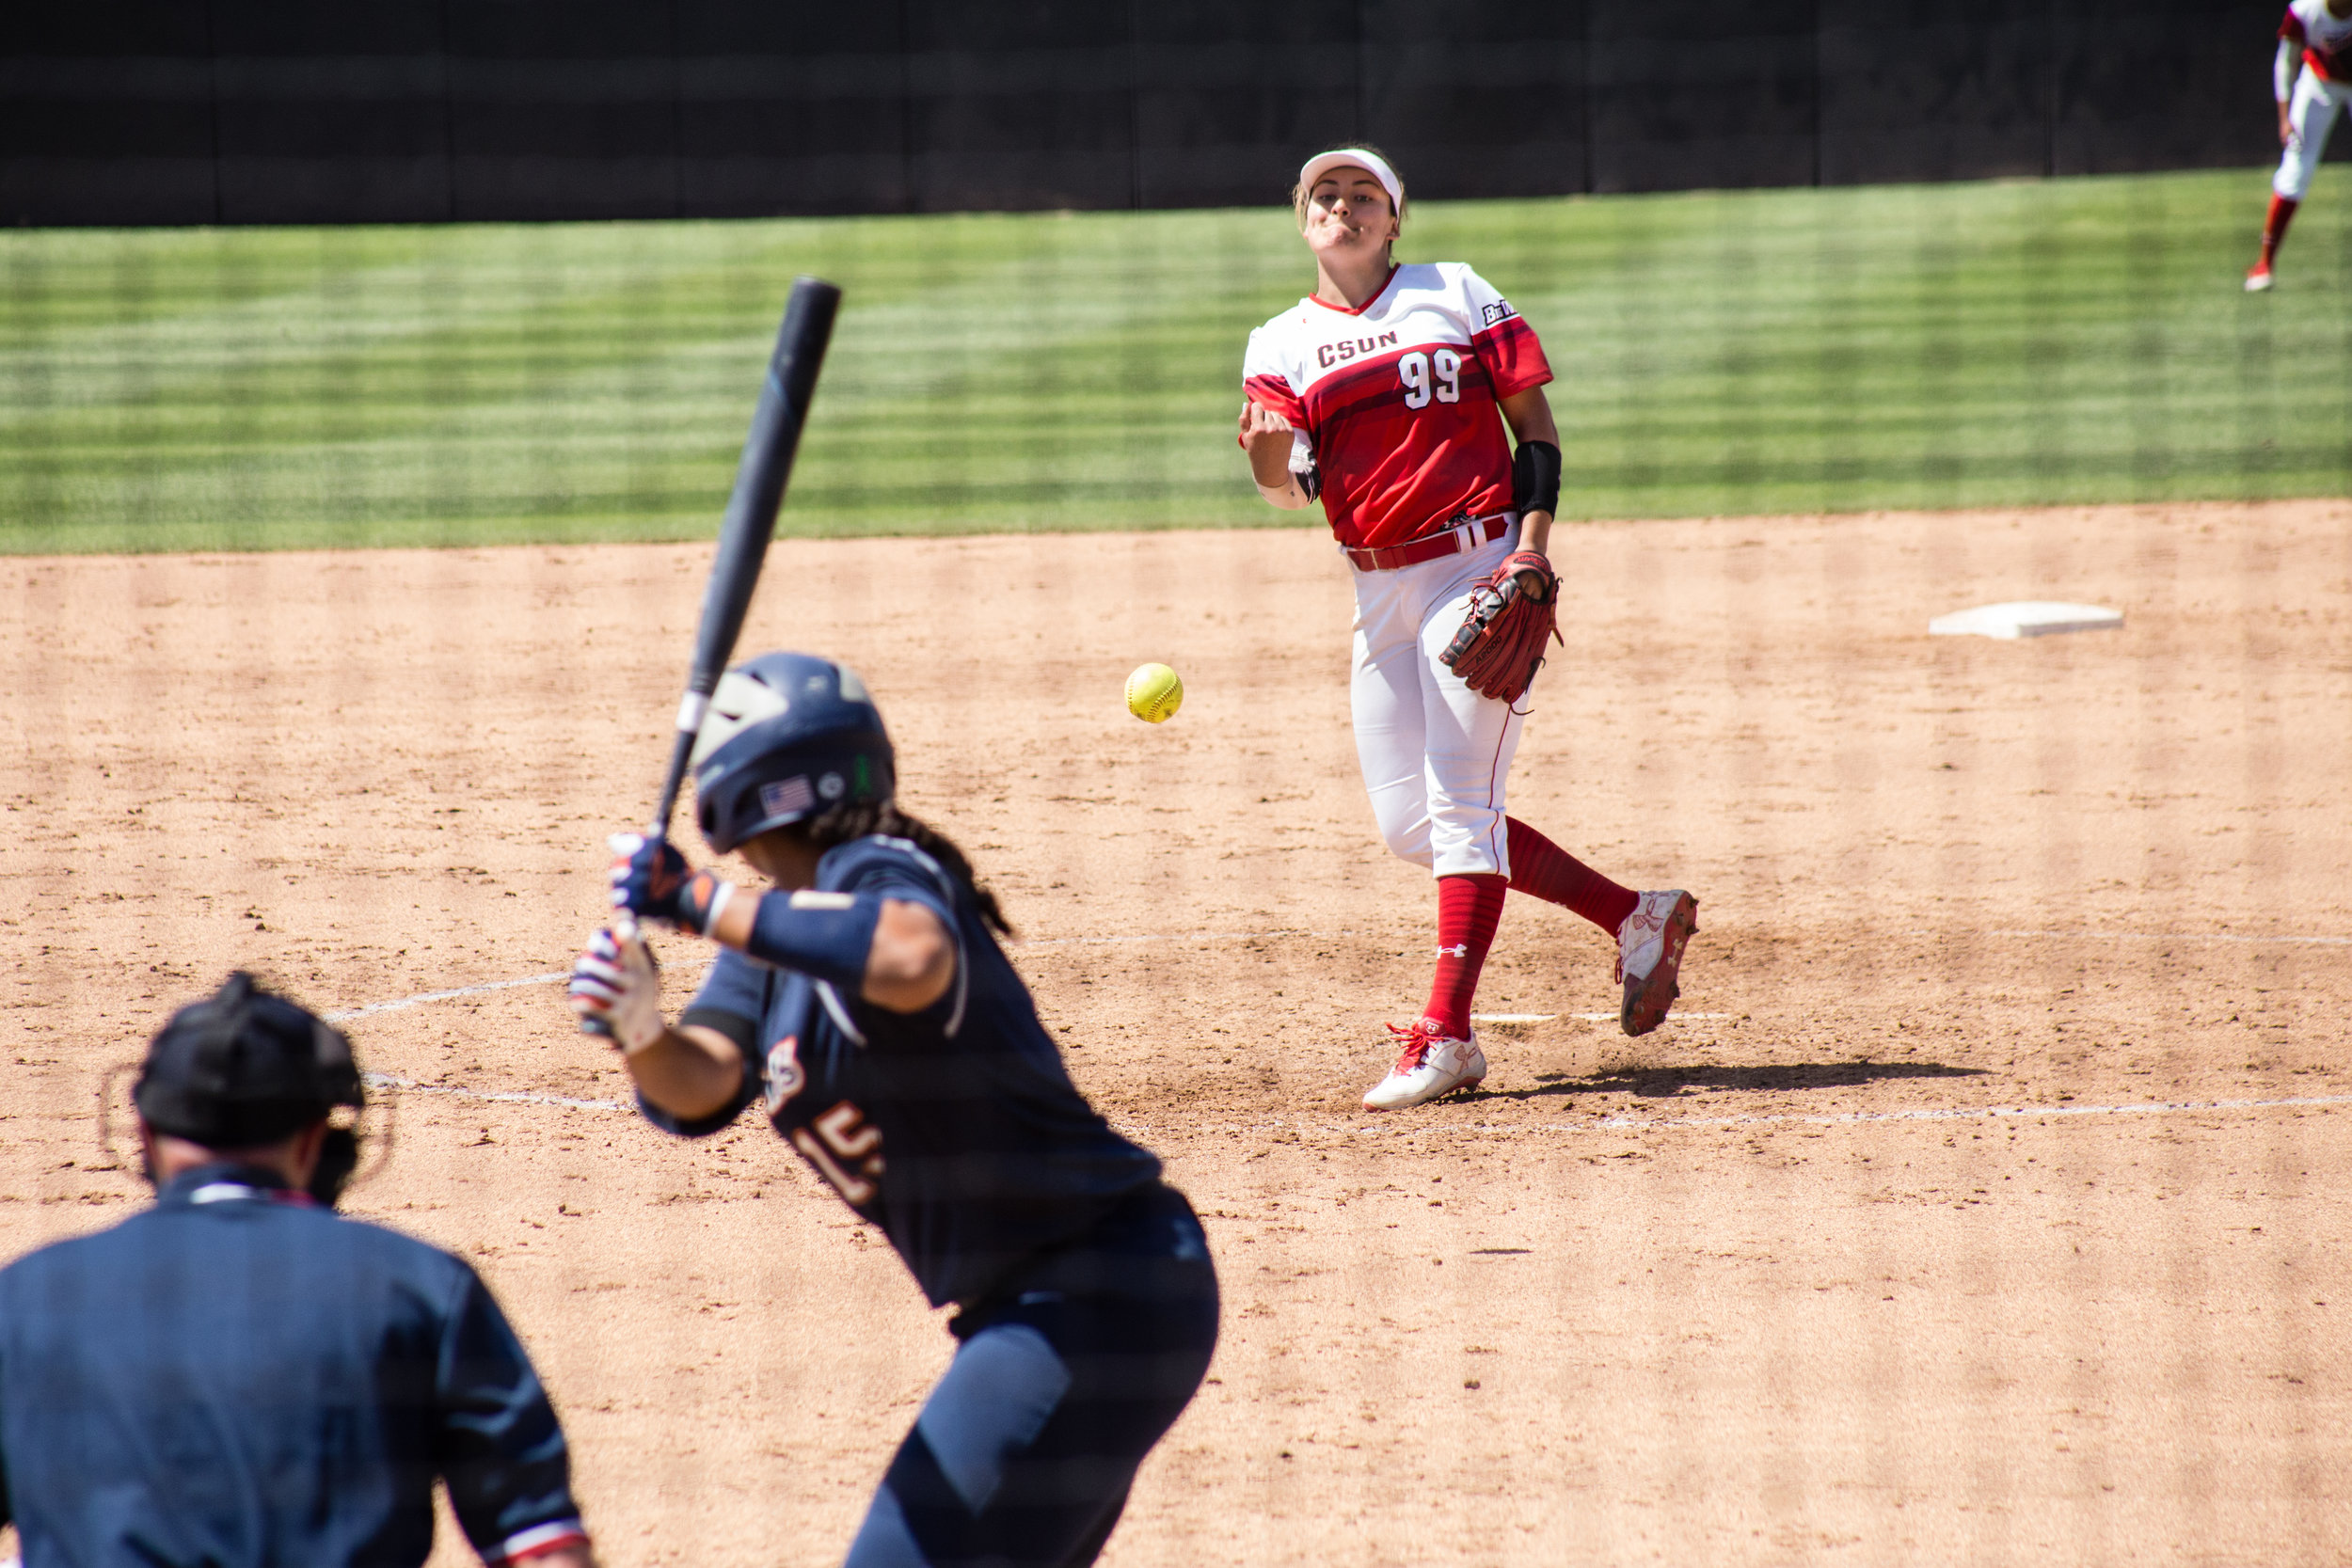 2018_04_07 - Softball vs CSU Fullerton (max reso)-22.jpg